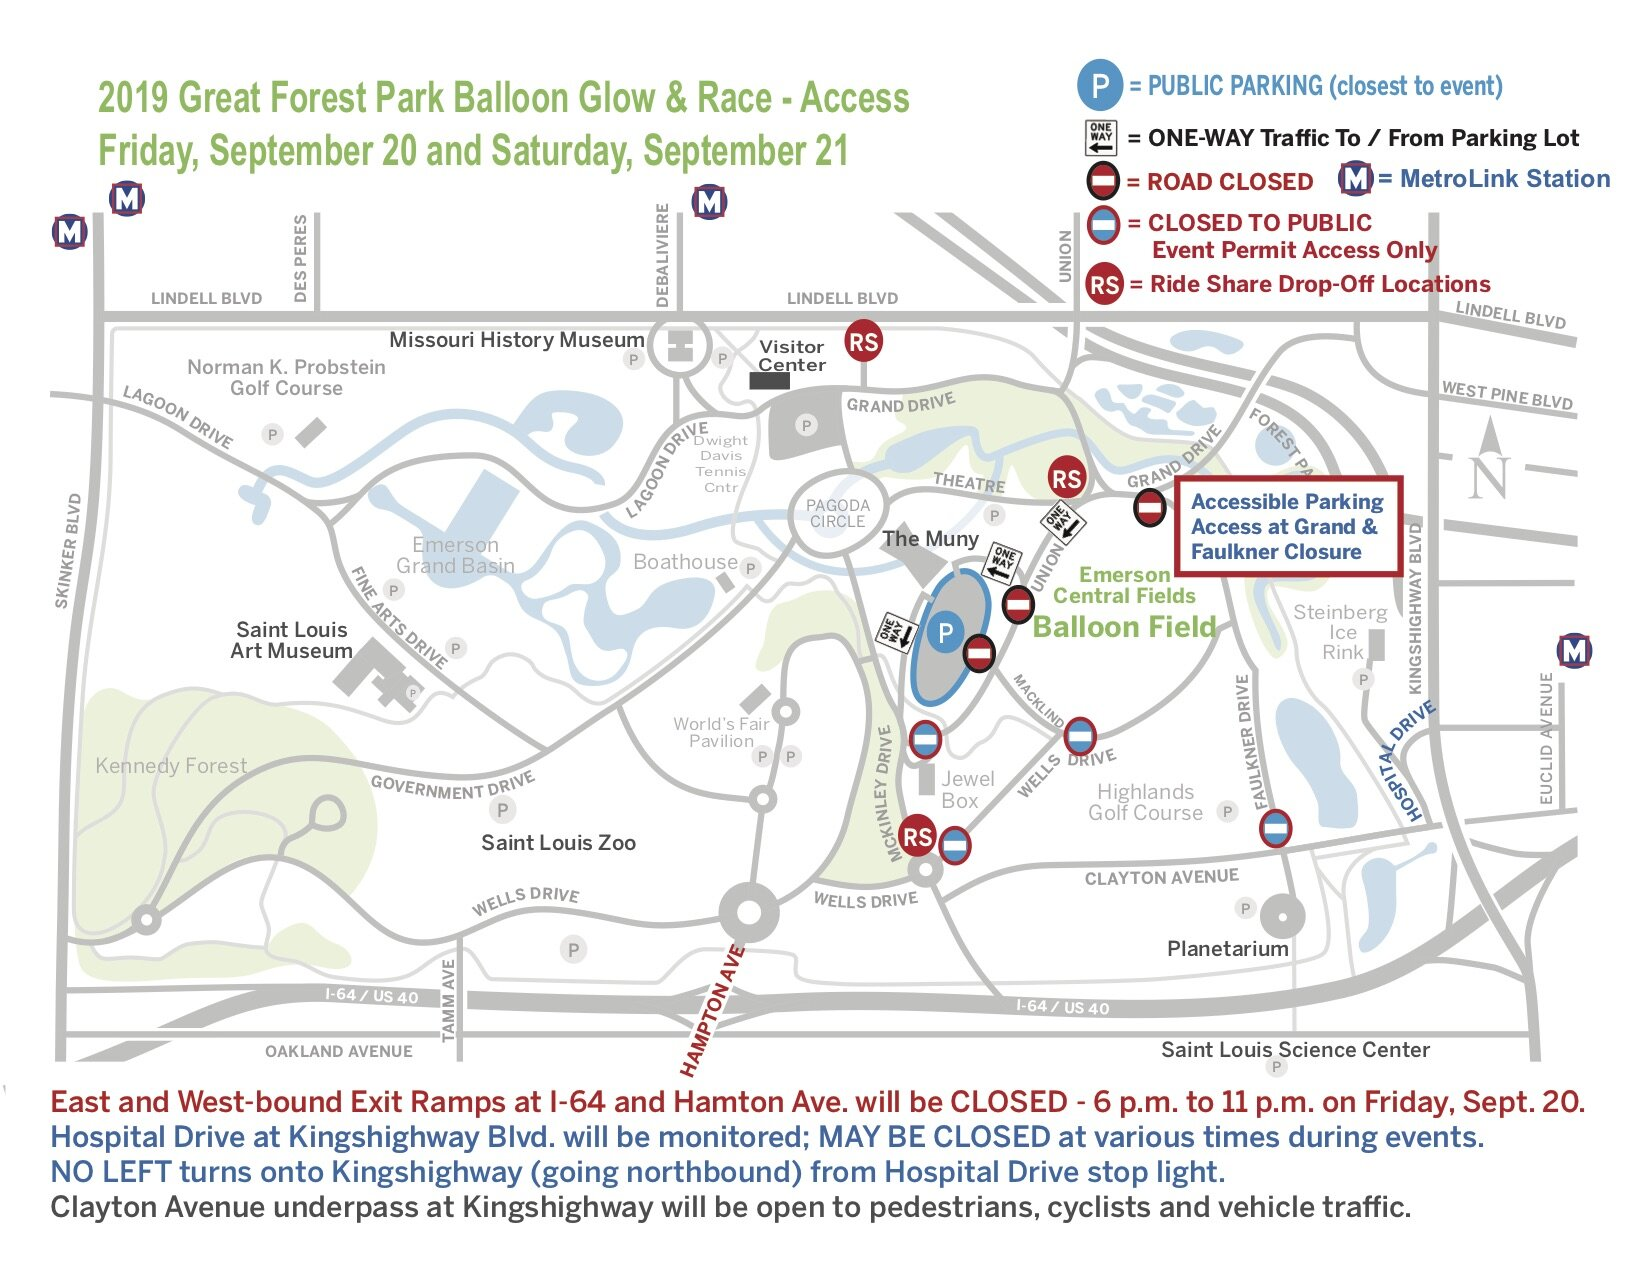 Balloon Glow and Race 2019 - Road Closures and Limited Access.jpg